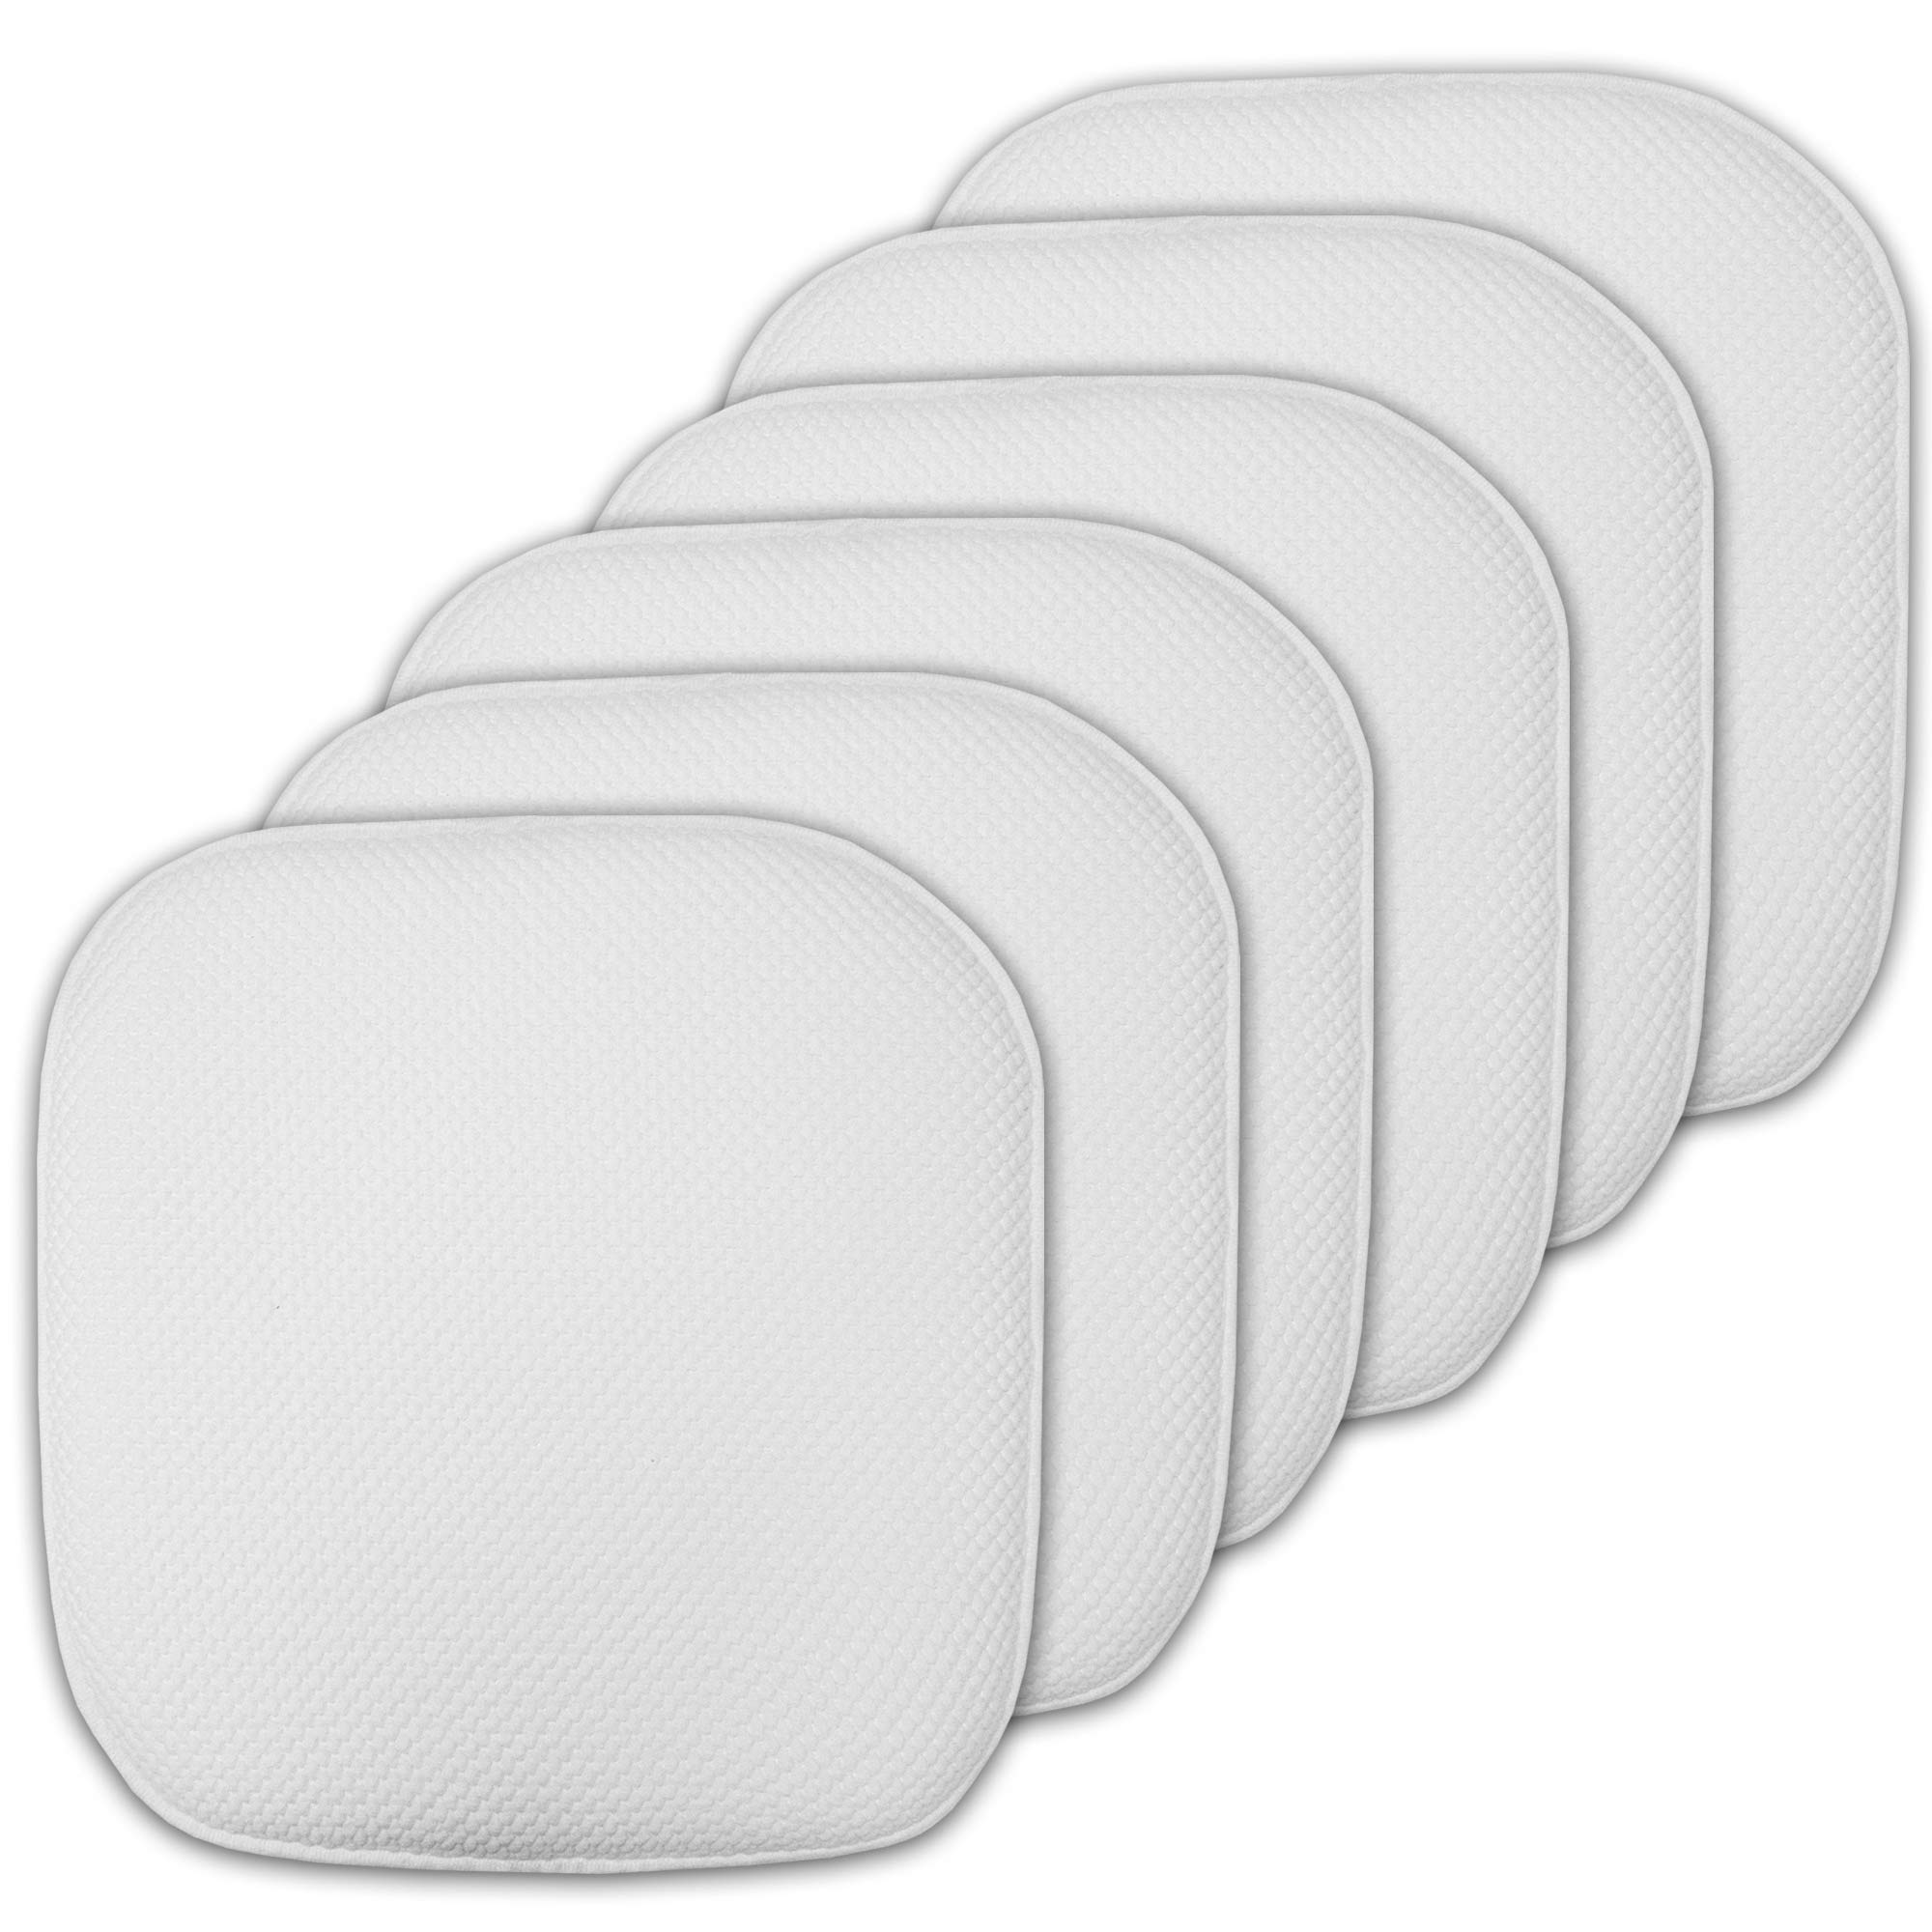 """Sweet Home Collection Cushion Memory Foam Chair Pads Honeycomb Nonslip Back Seat Cover 16"""" x 16"""" 6 Pack White product image"""